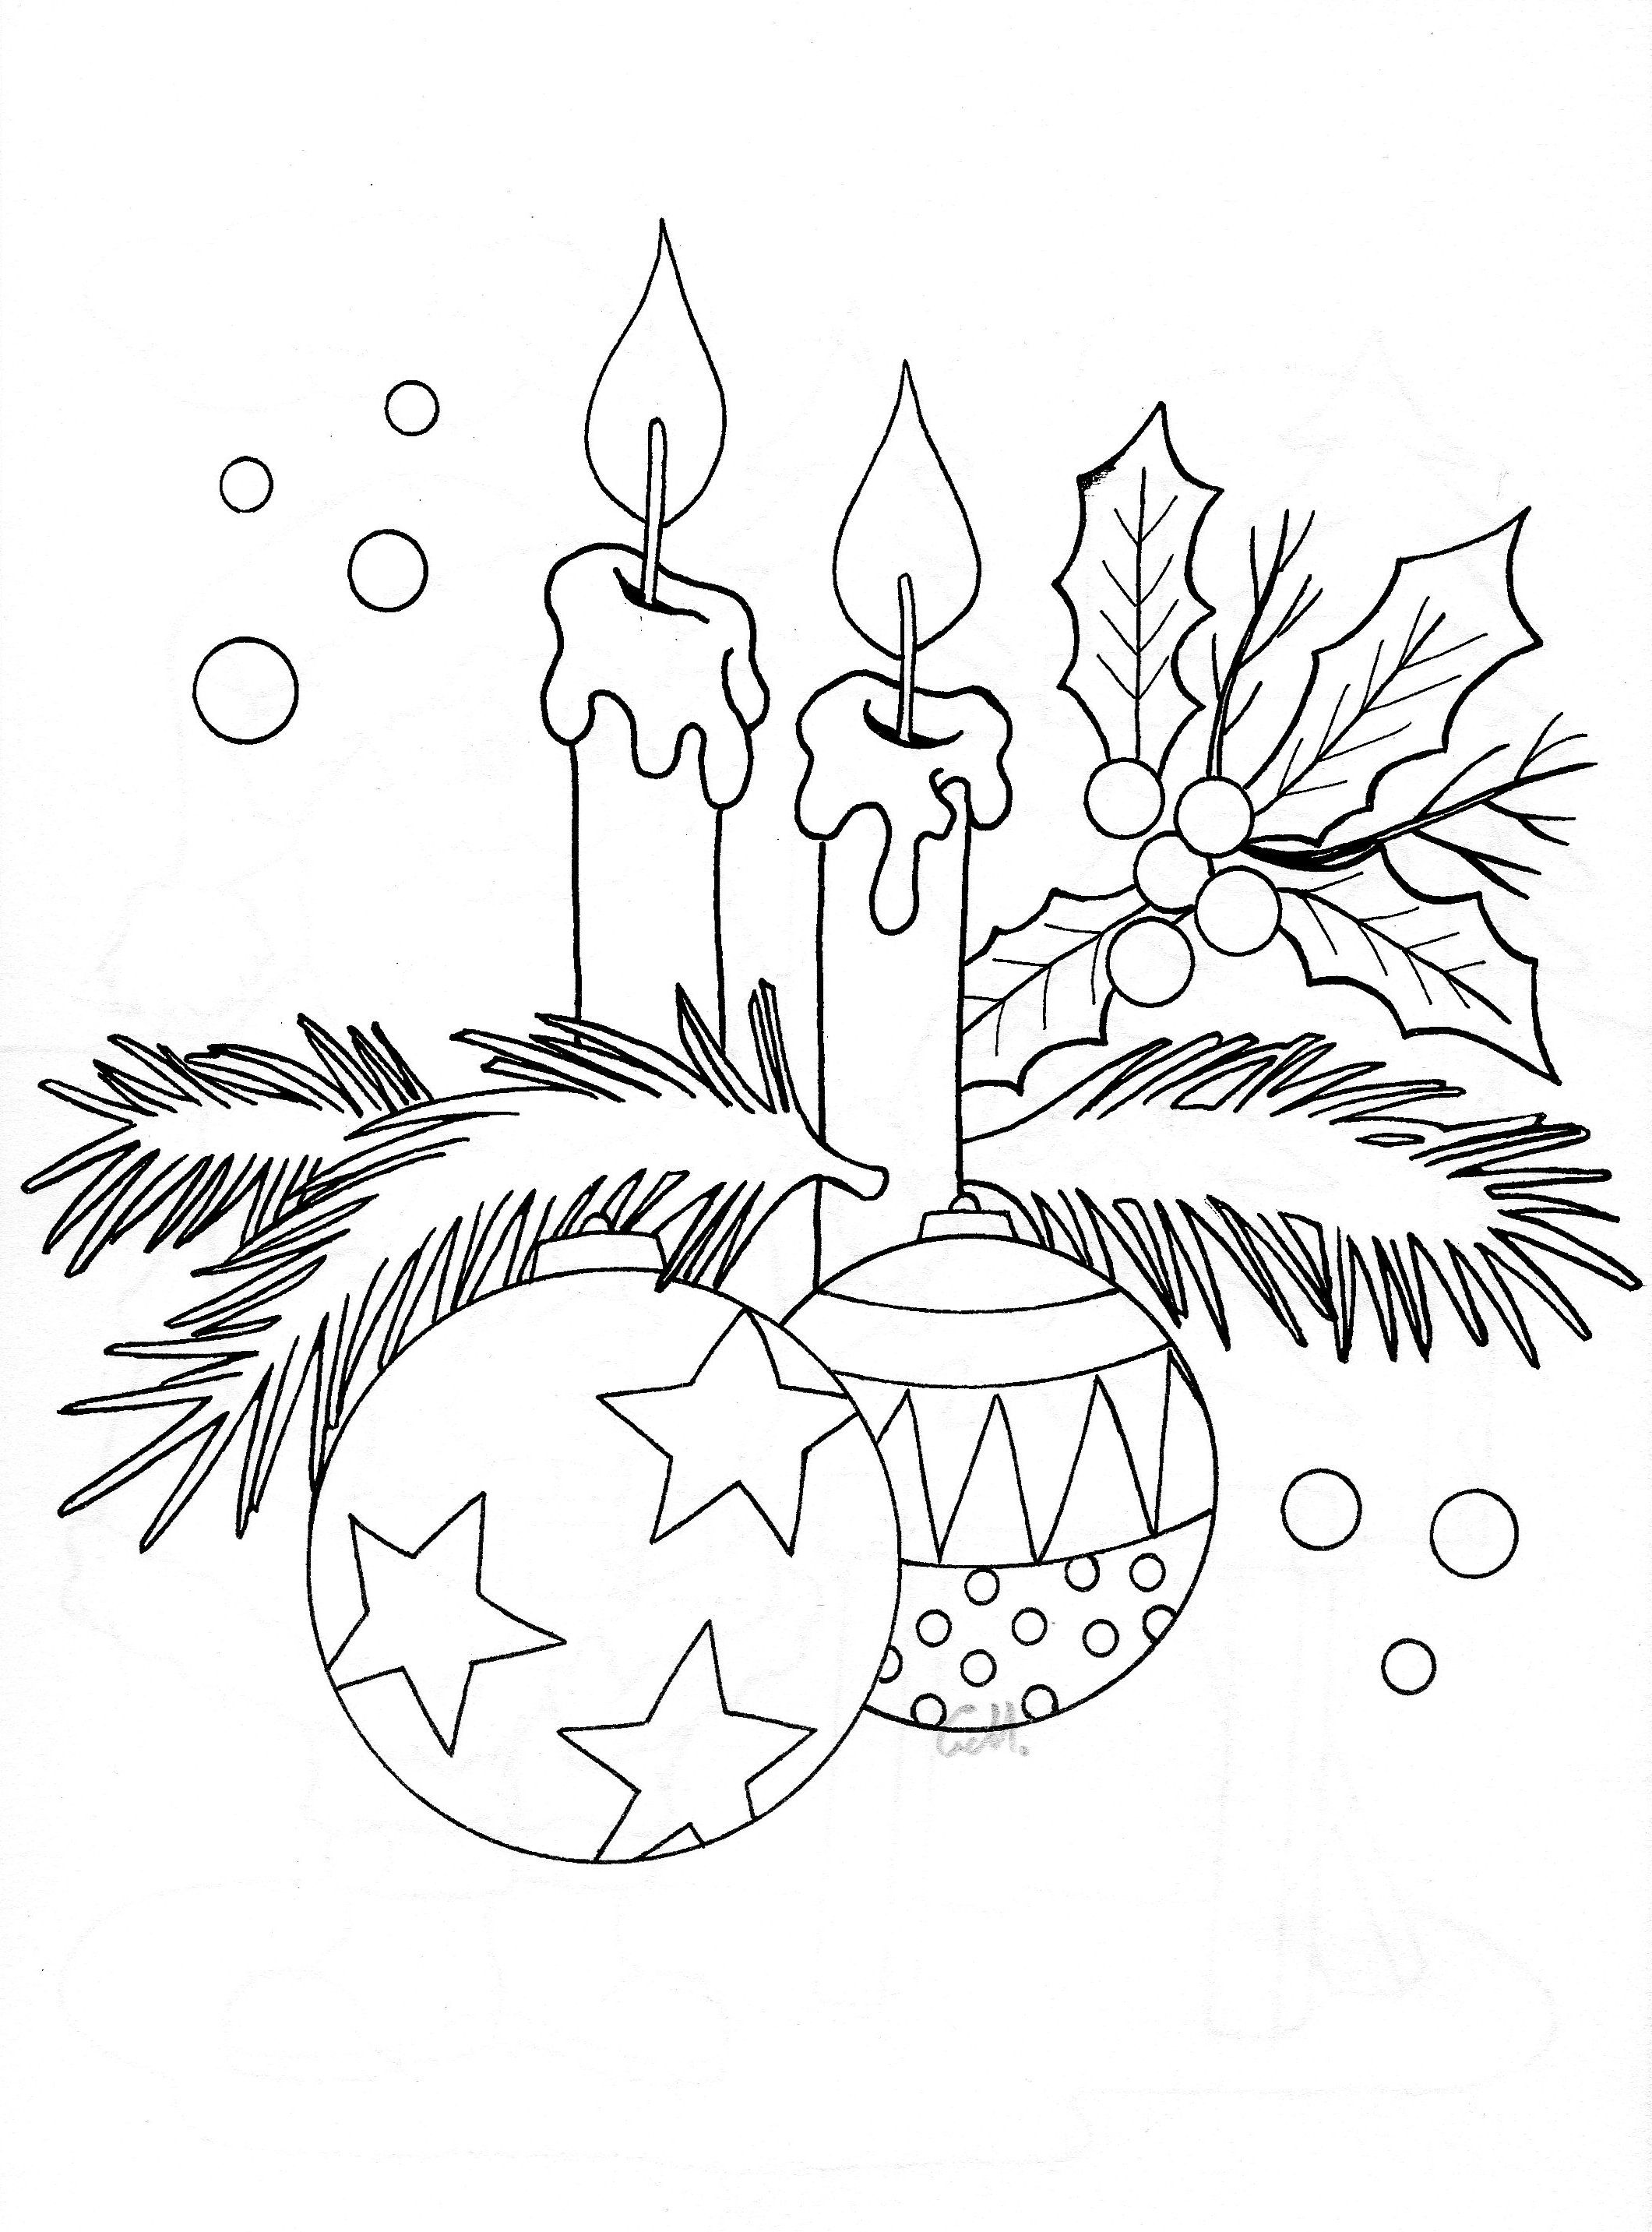 Free coloring pages of candles and holly